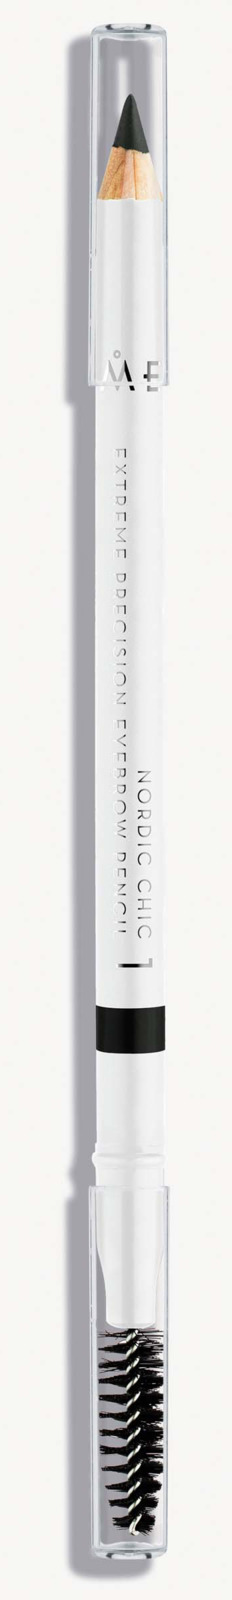 Карандаш для бровей Lumene Nordic Chic, №01, 1.2 г lumene nordic chic under eye concealer